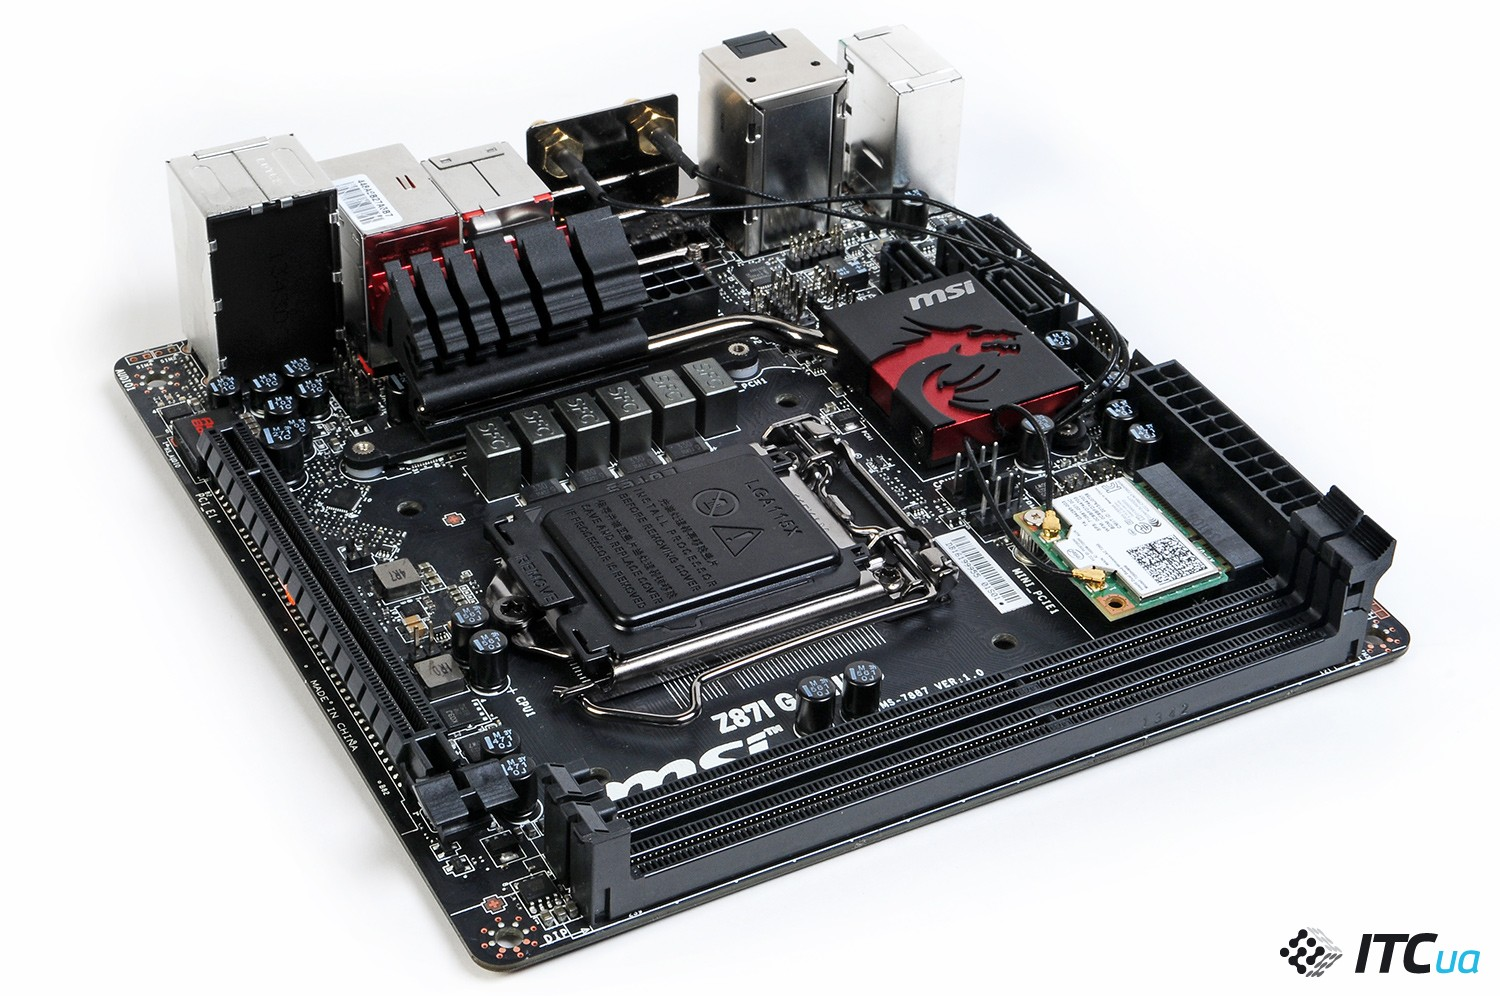 MSI Z87I Gaming AC Intel Smart Connect Technology Treiber Herunterladen